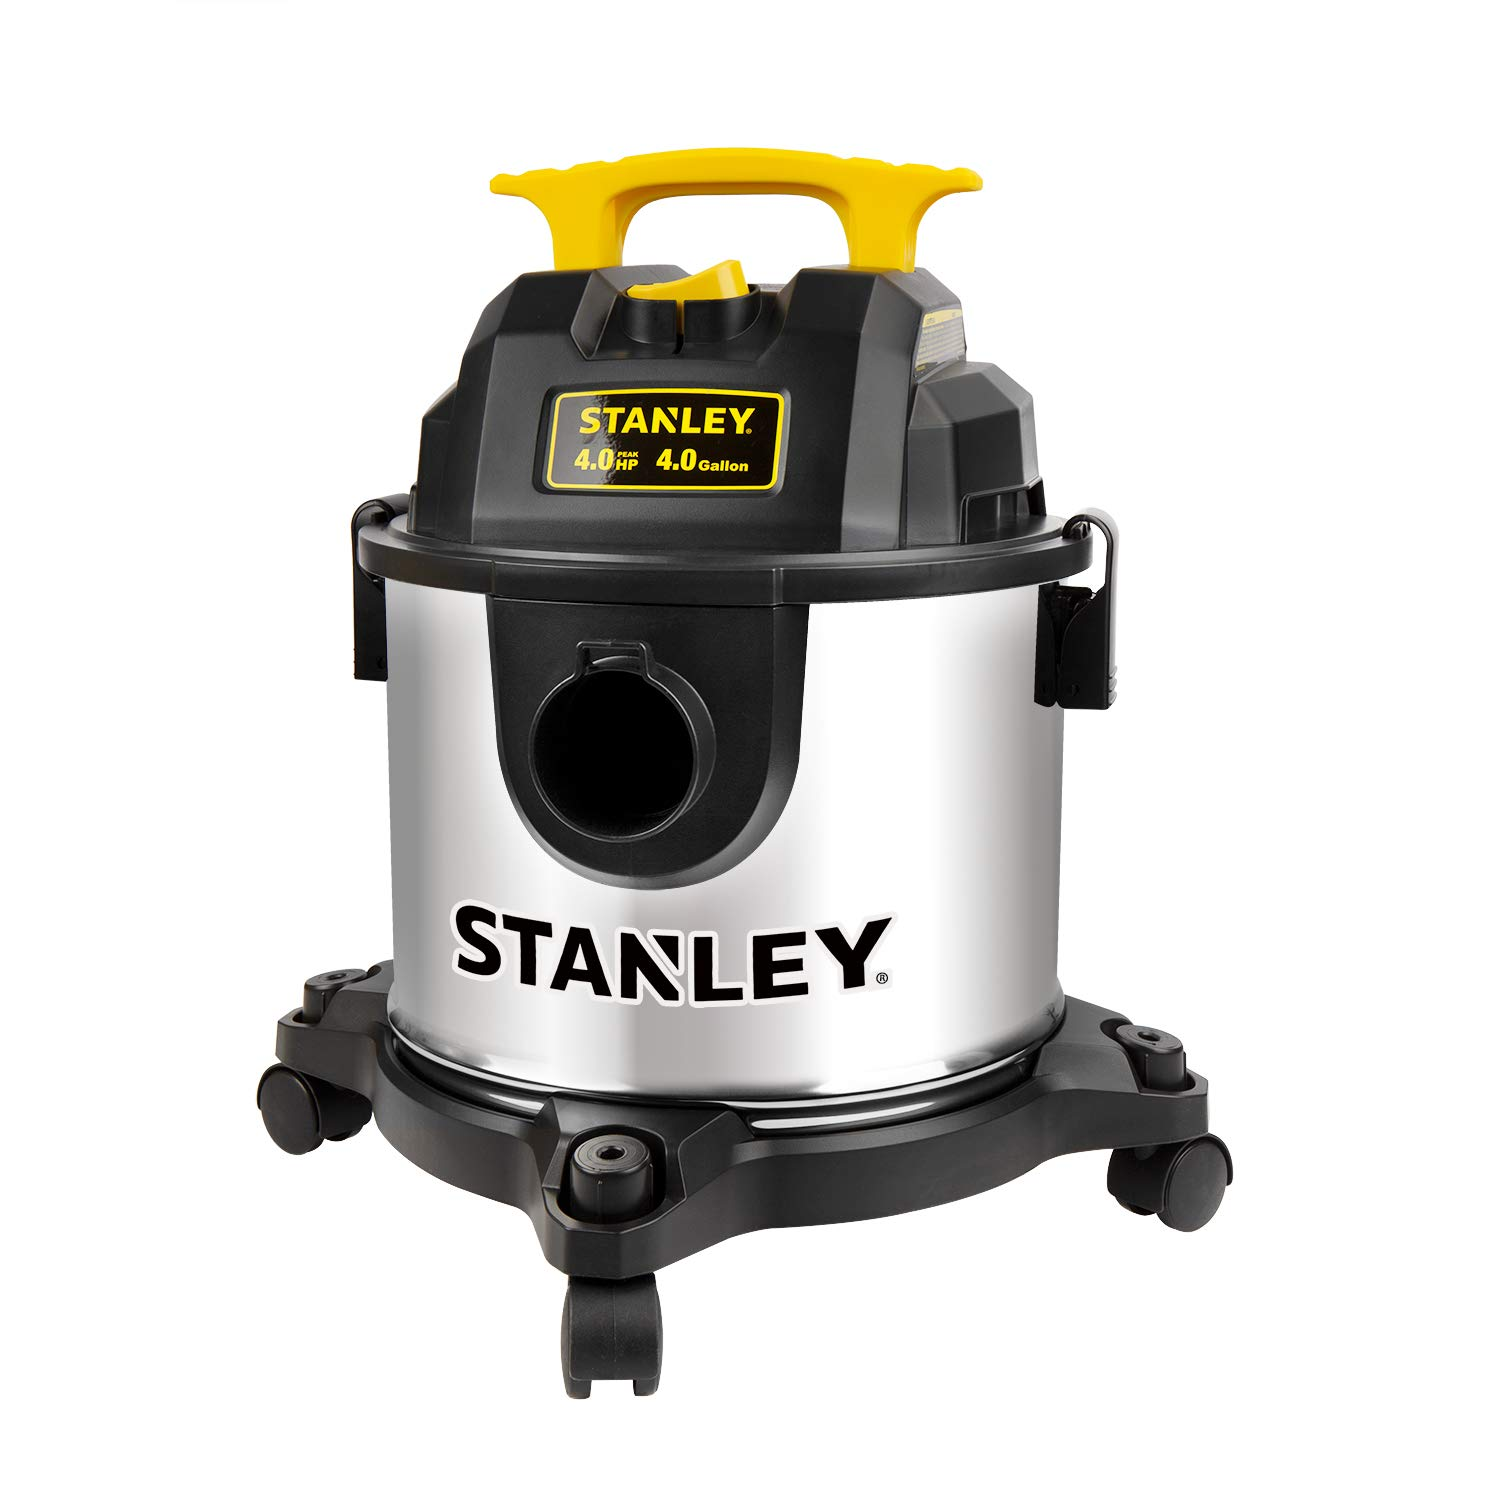 Stanley 4 Gallon Wet Dry Vacuum, 4 Peak HP Stainless Steel 3 in 1 Shop Vac Blower with Powerful Suction, Multifunctional Shop Vacuum W/ 4 Horsepower Motor for Job Site,Garage,Basement,Van,Workshop